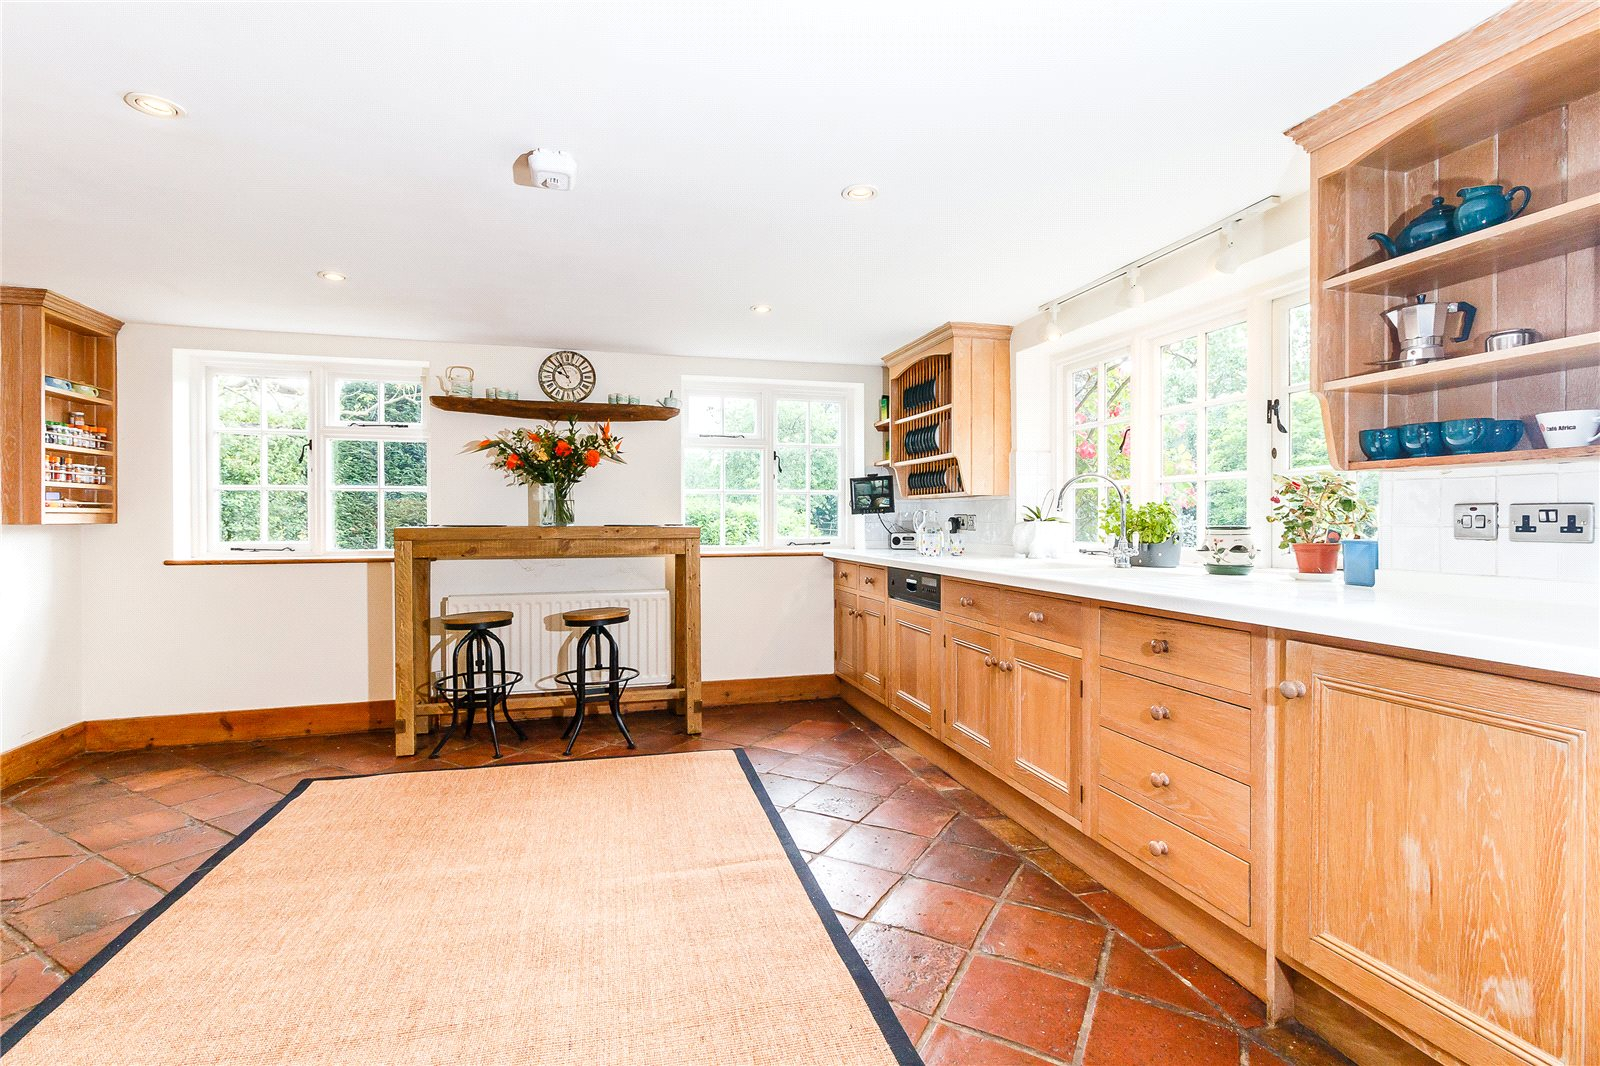 Additional photo for property listing at Newbarn Lane, Seer Green, Beaconsfield, Buckinghamshire, HP9 Beaconsfield, Αγγλια